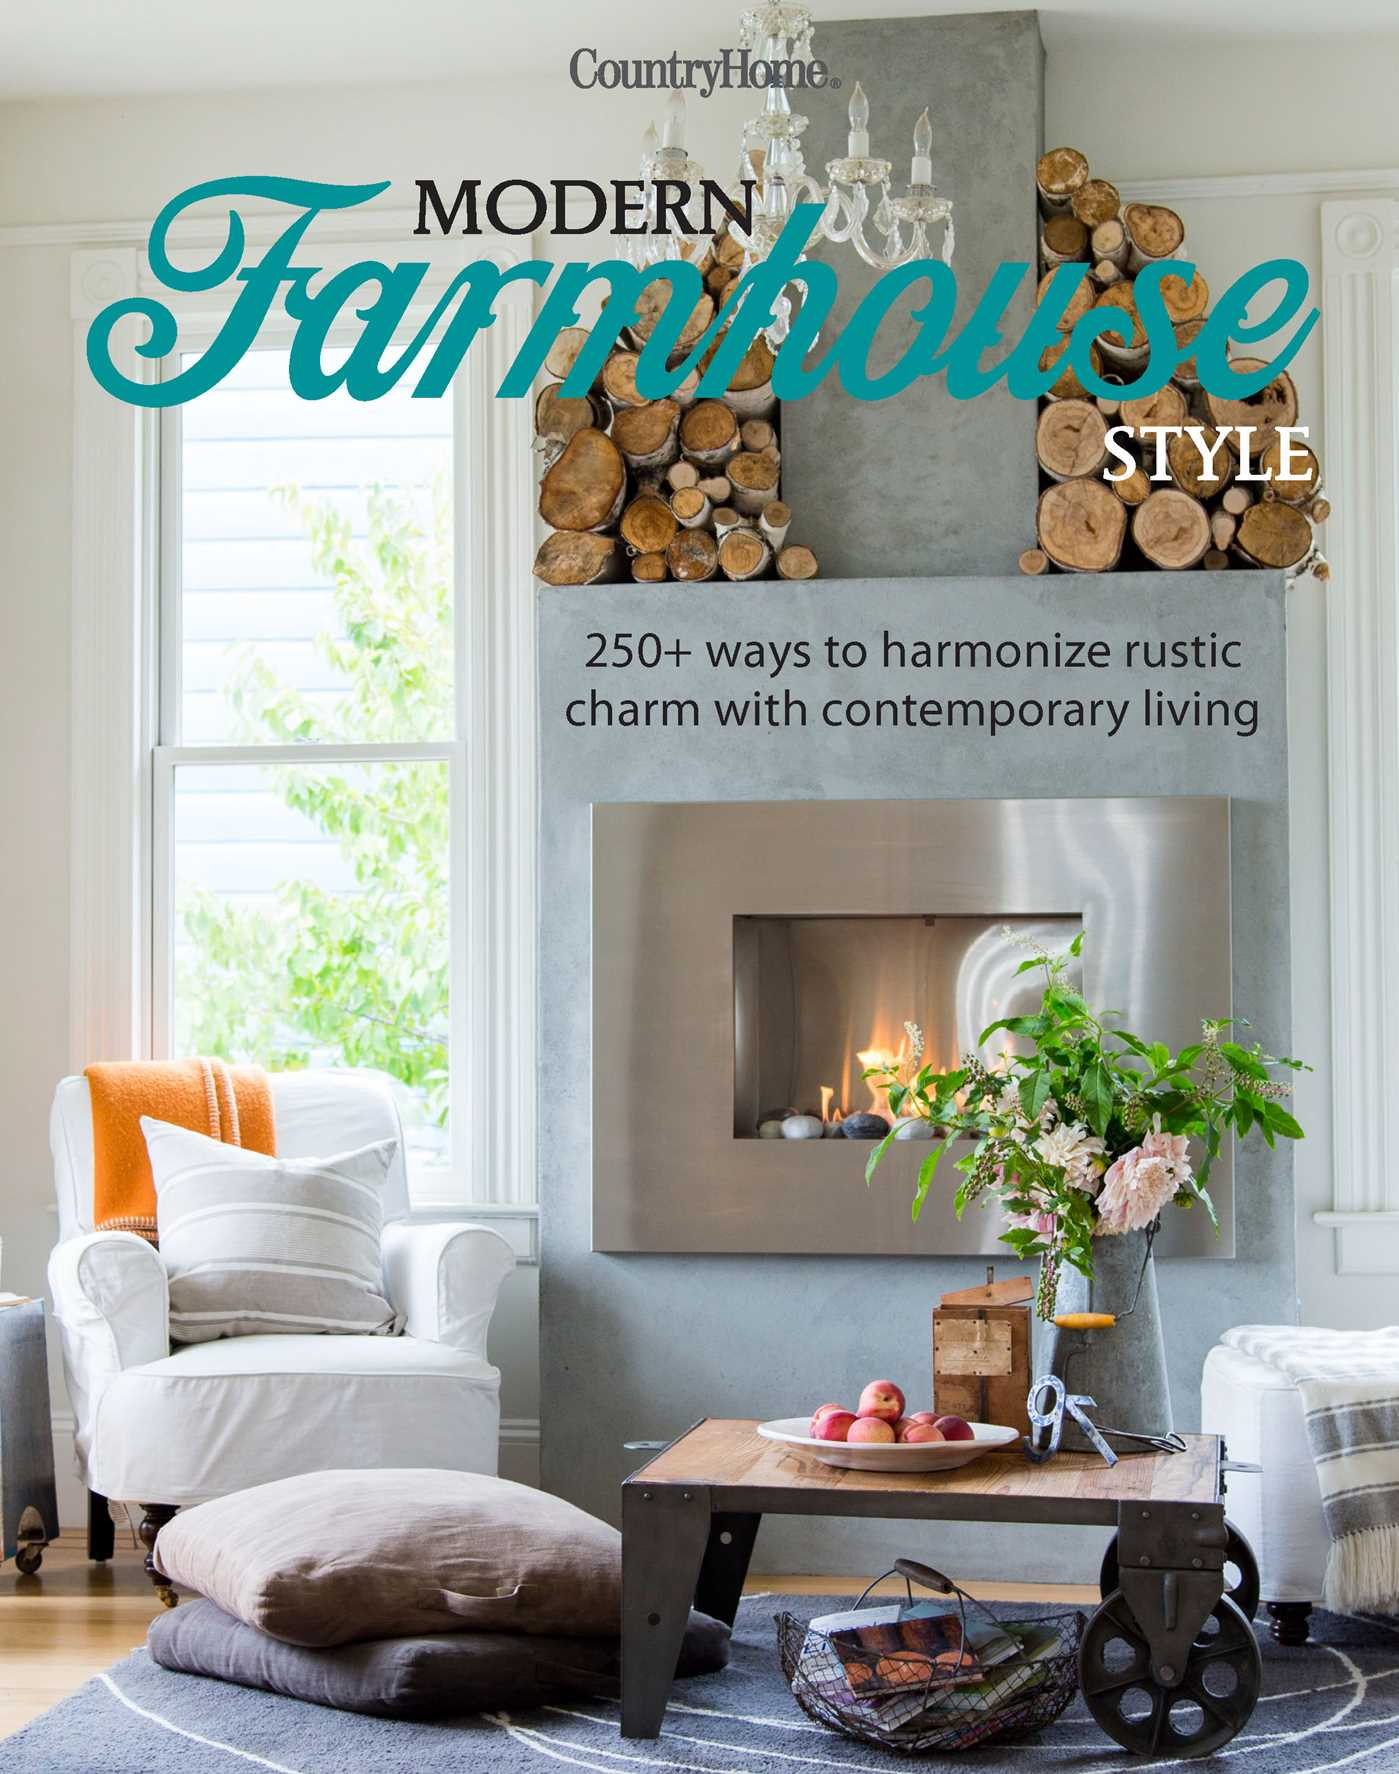 Modern Farmhouse Style Book By Country Home Official Publisher Page Simon Schuster